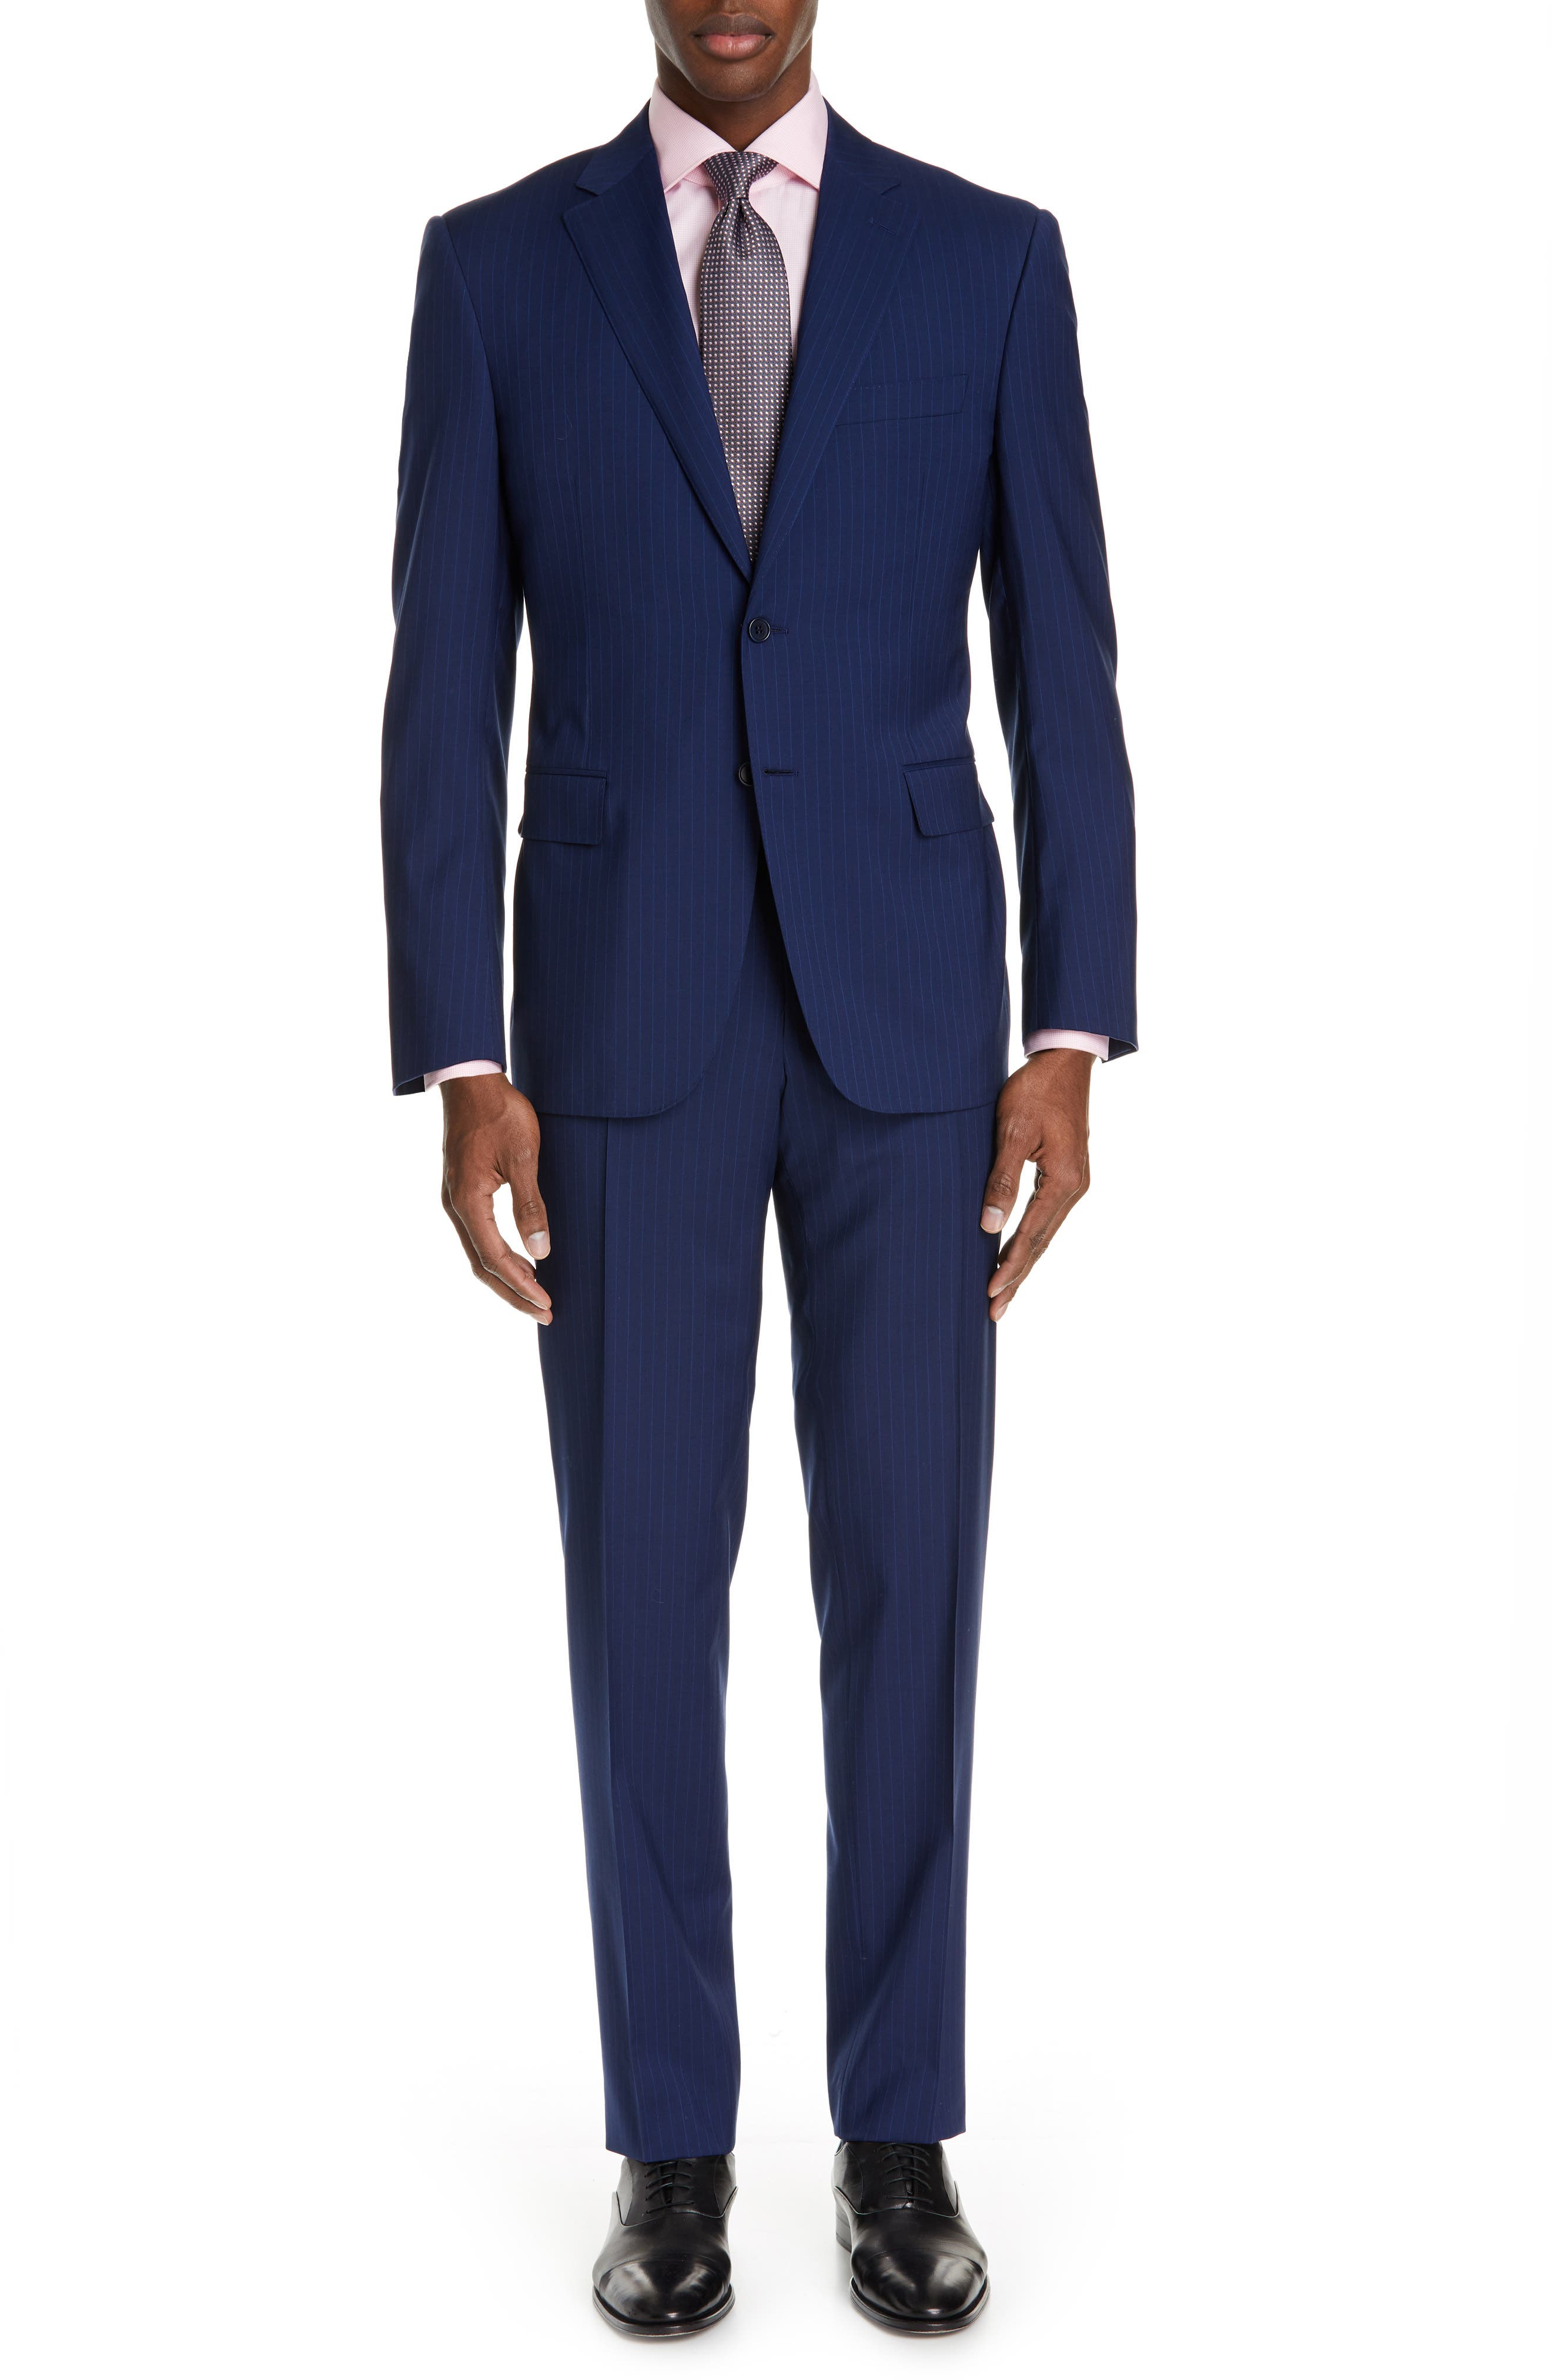 CANALI, Sienna Classic Fit Stripe Wool Suit, Main thumbnail 1, color, BLUE